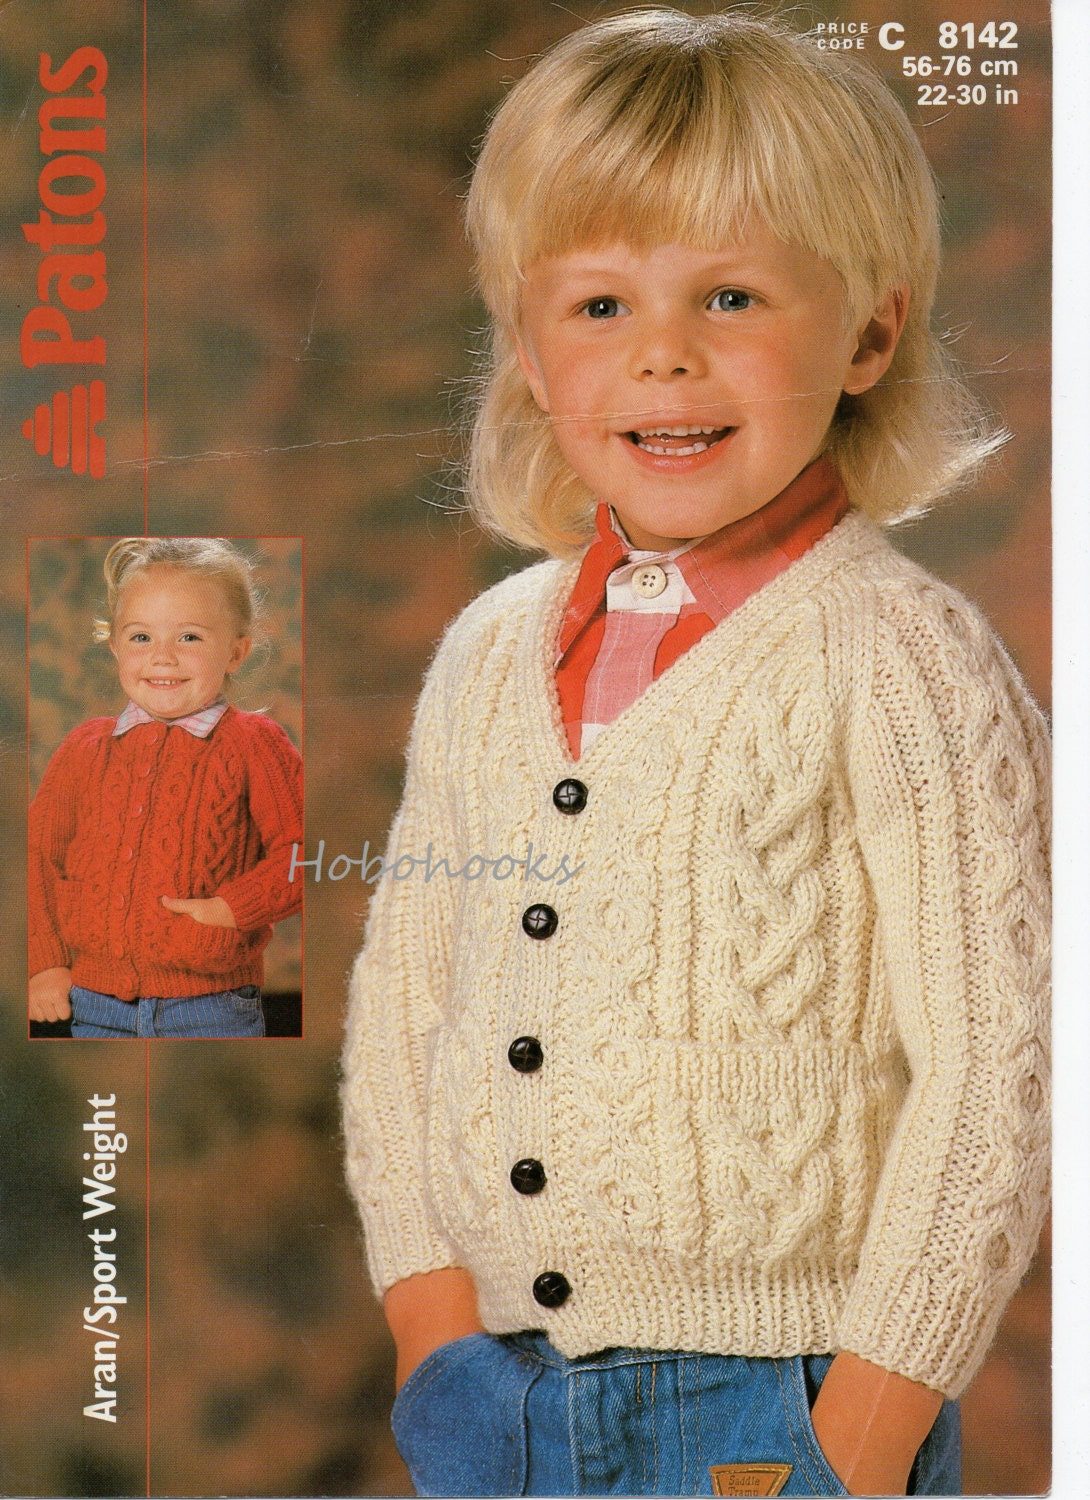 childrens aran cardigan knitting pattern pdf download childs cable ...